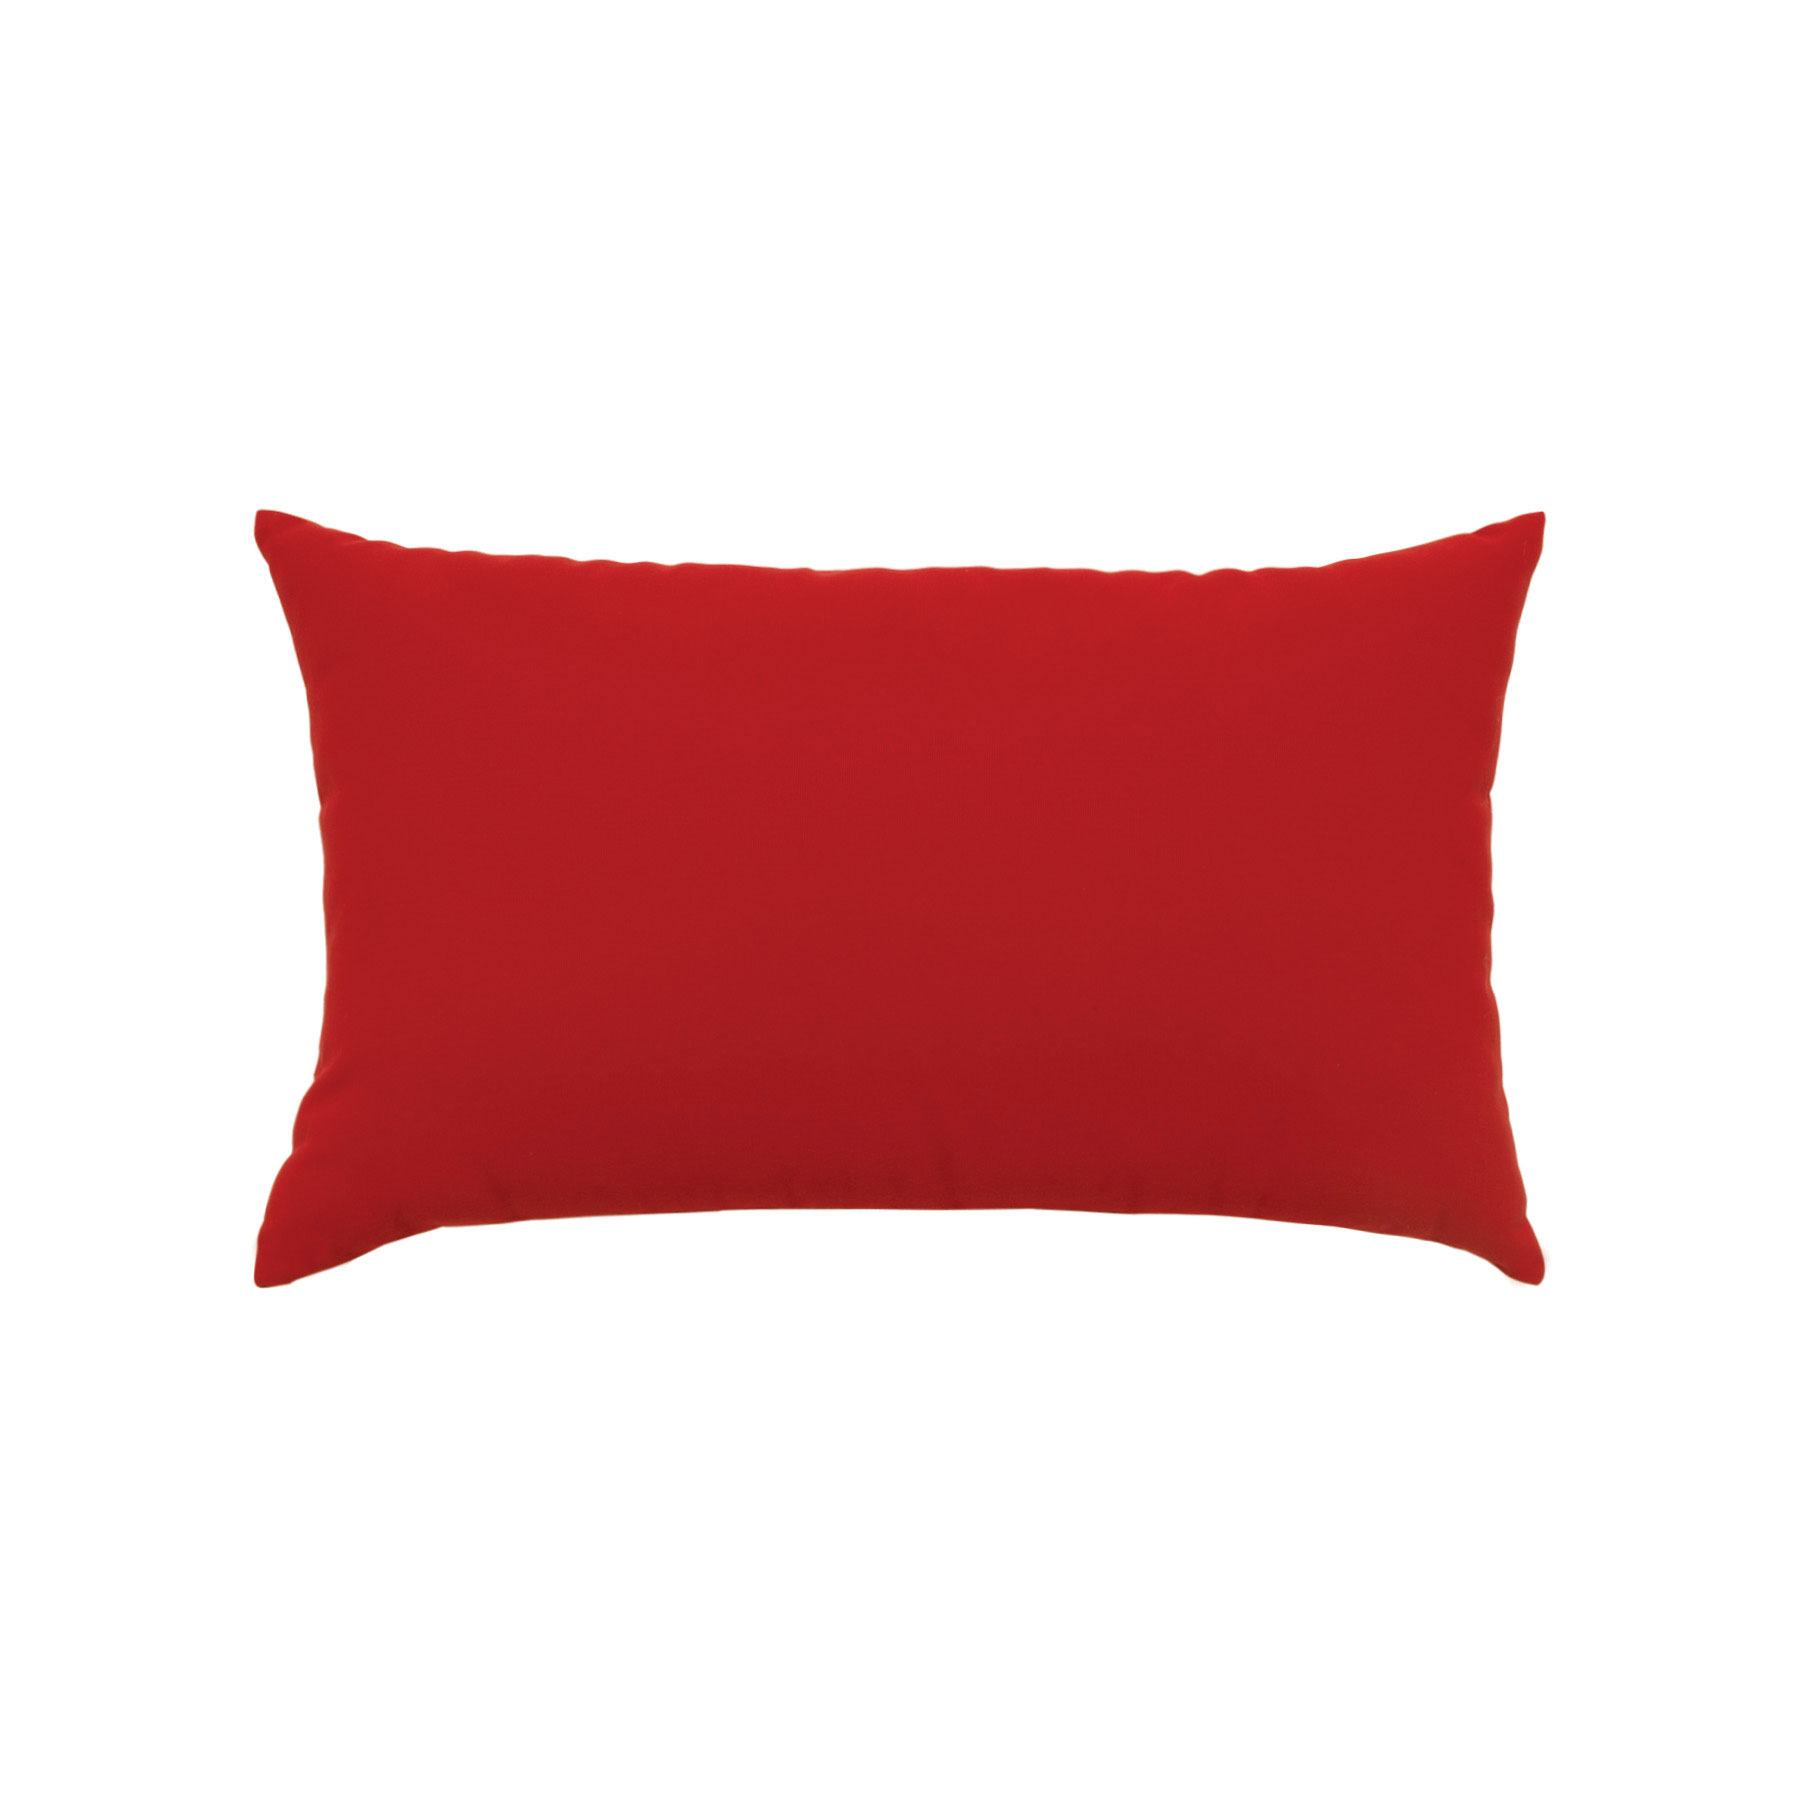 Elaine Smith Canvas Jockey Red Lumbar Pillow Leisure Living